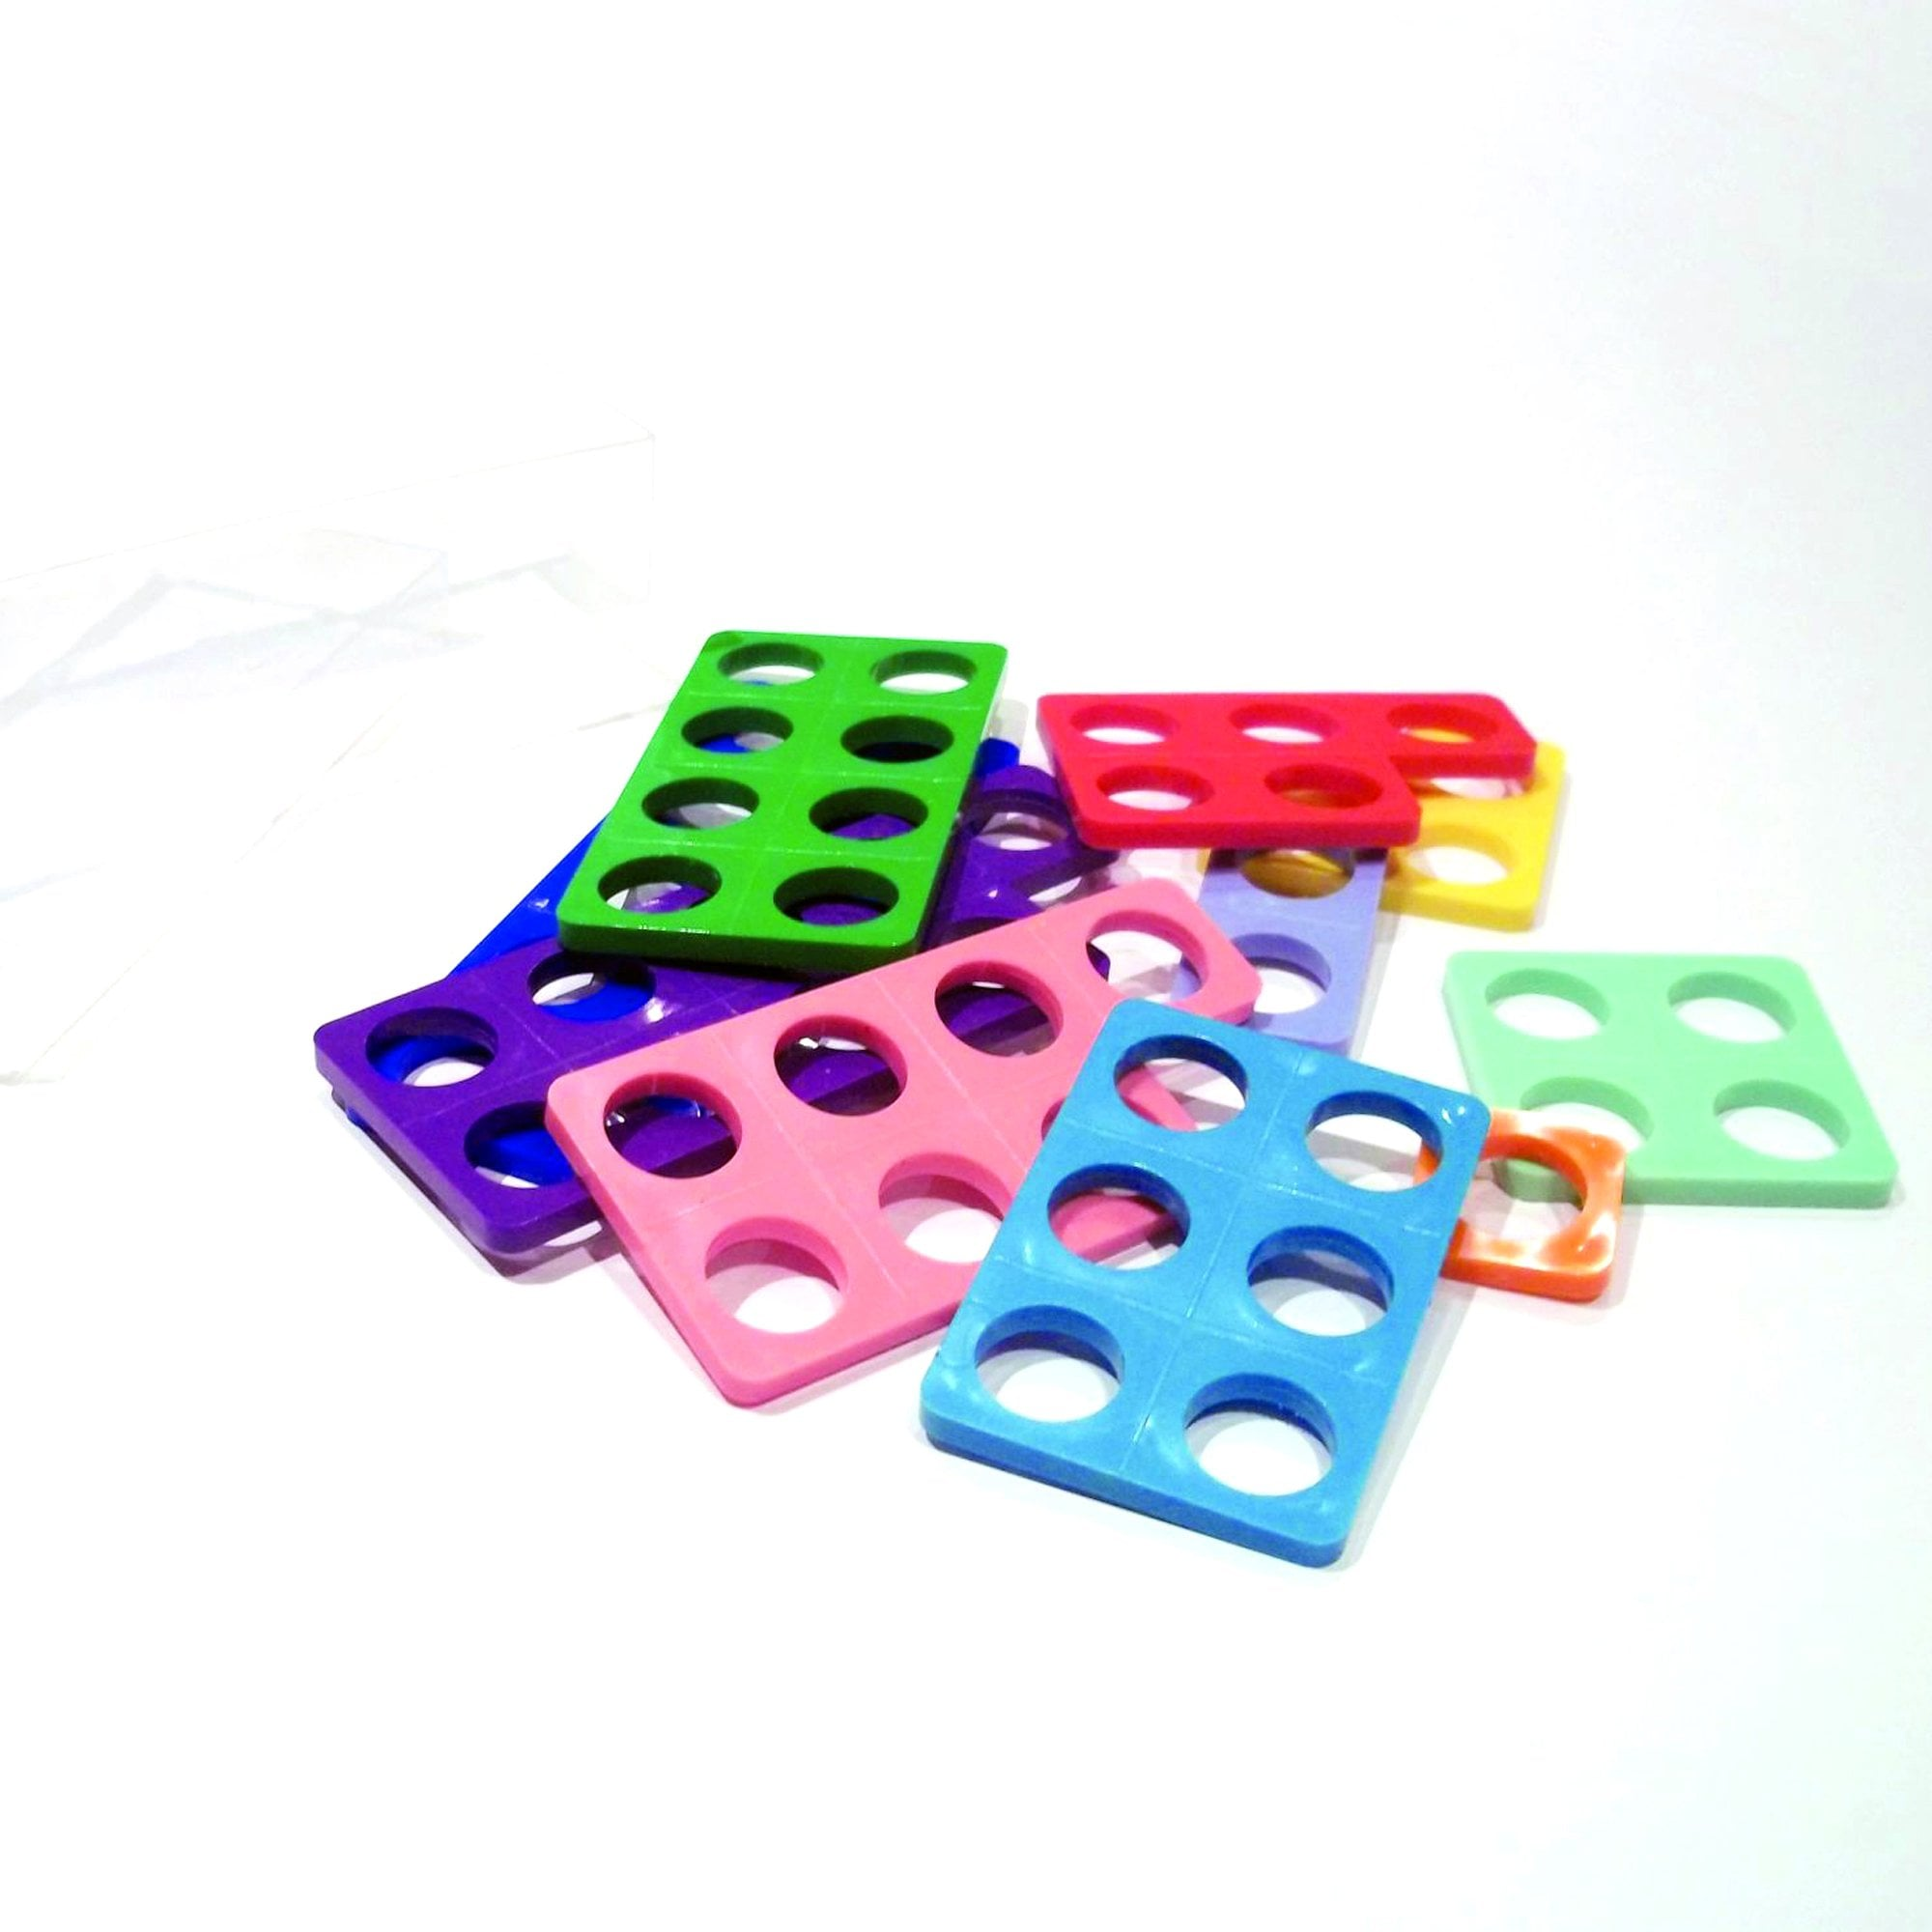 Numicon Shapes 1-10 - EYFS Maths from Early Years Resources UK